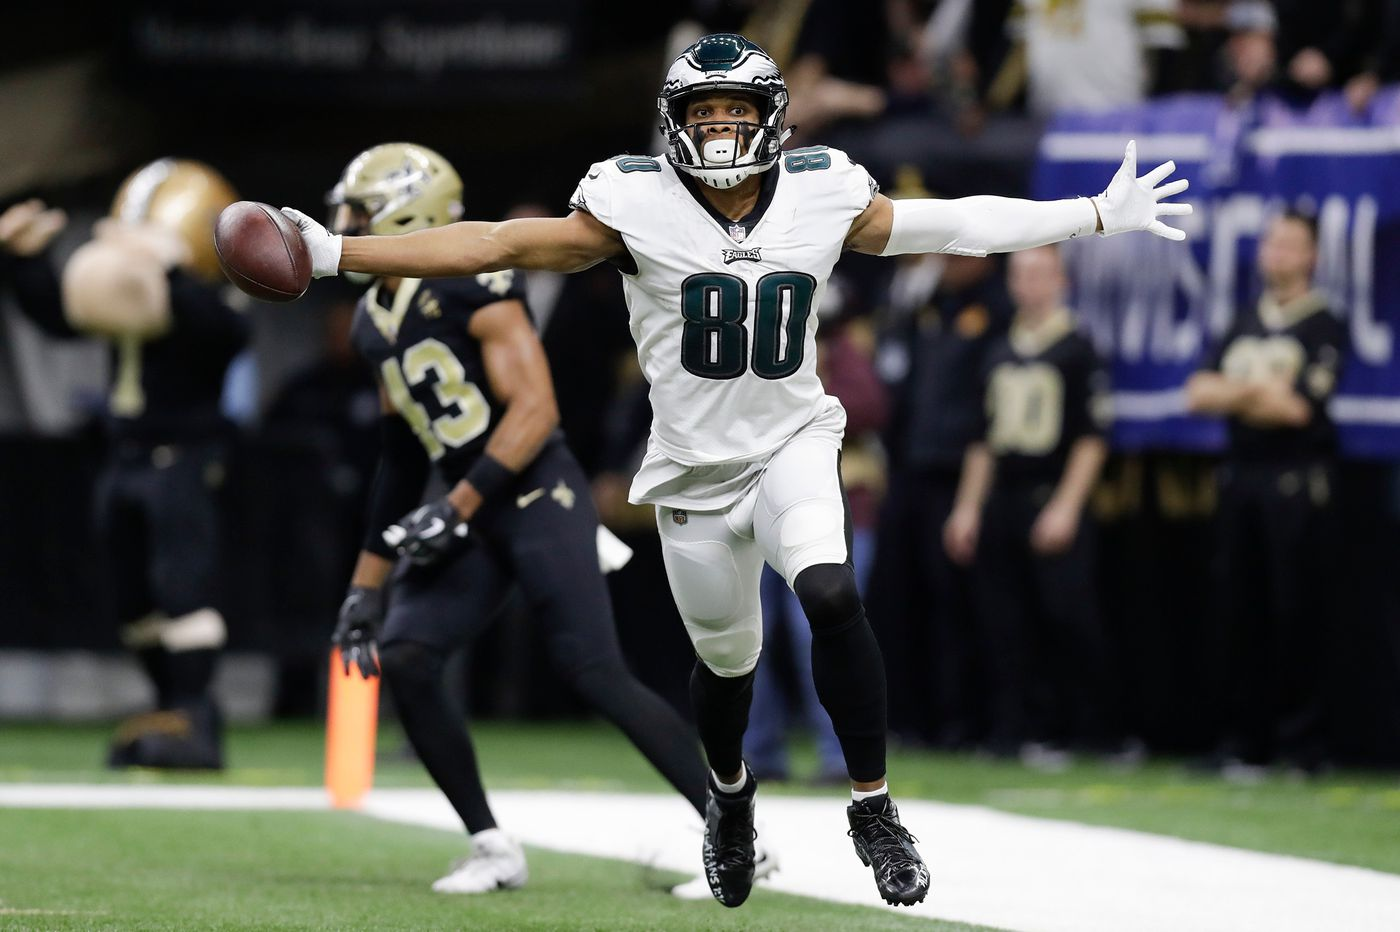 Jordan Matthews signs with 49ers after brief return to Eagles